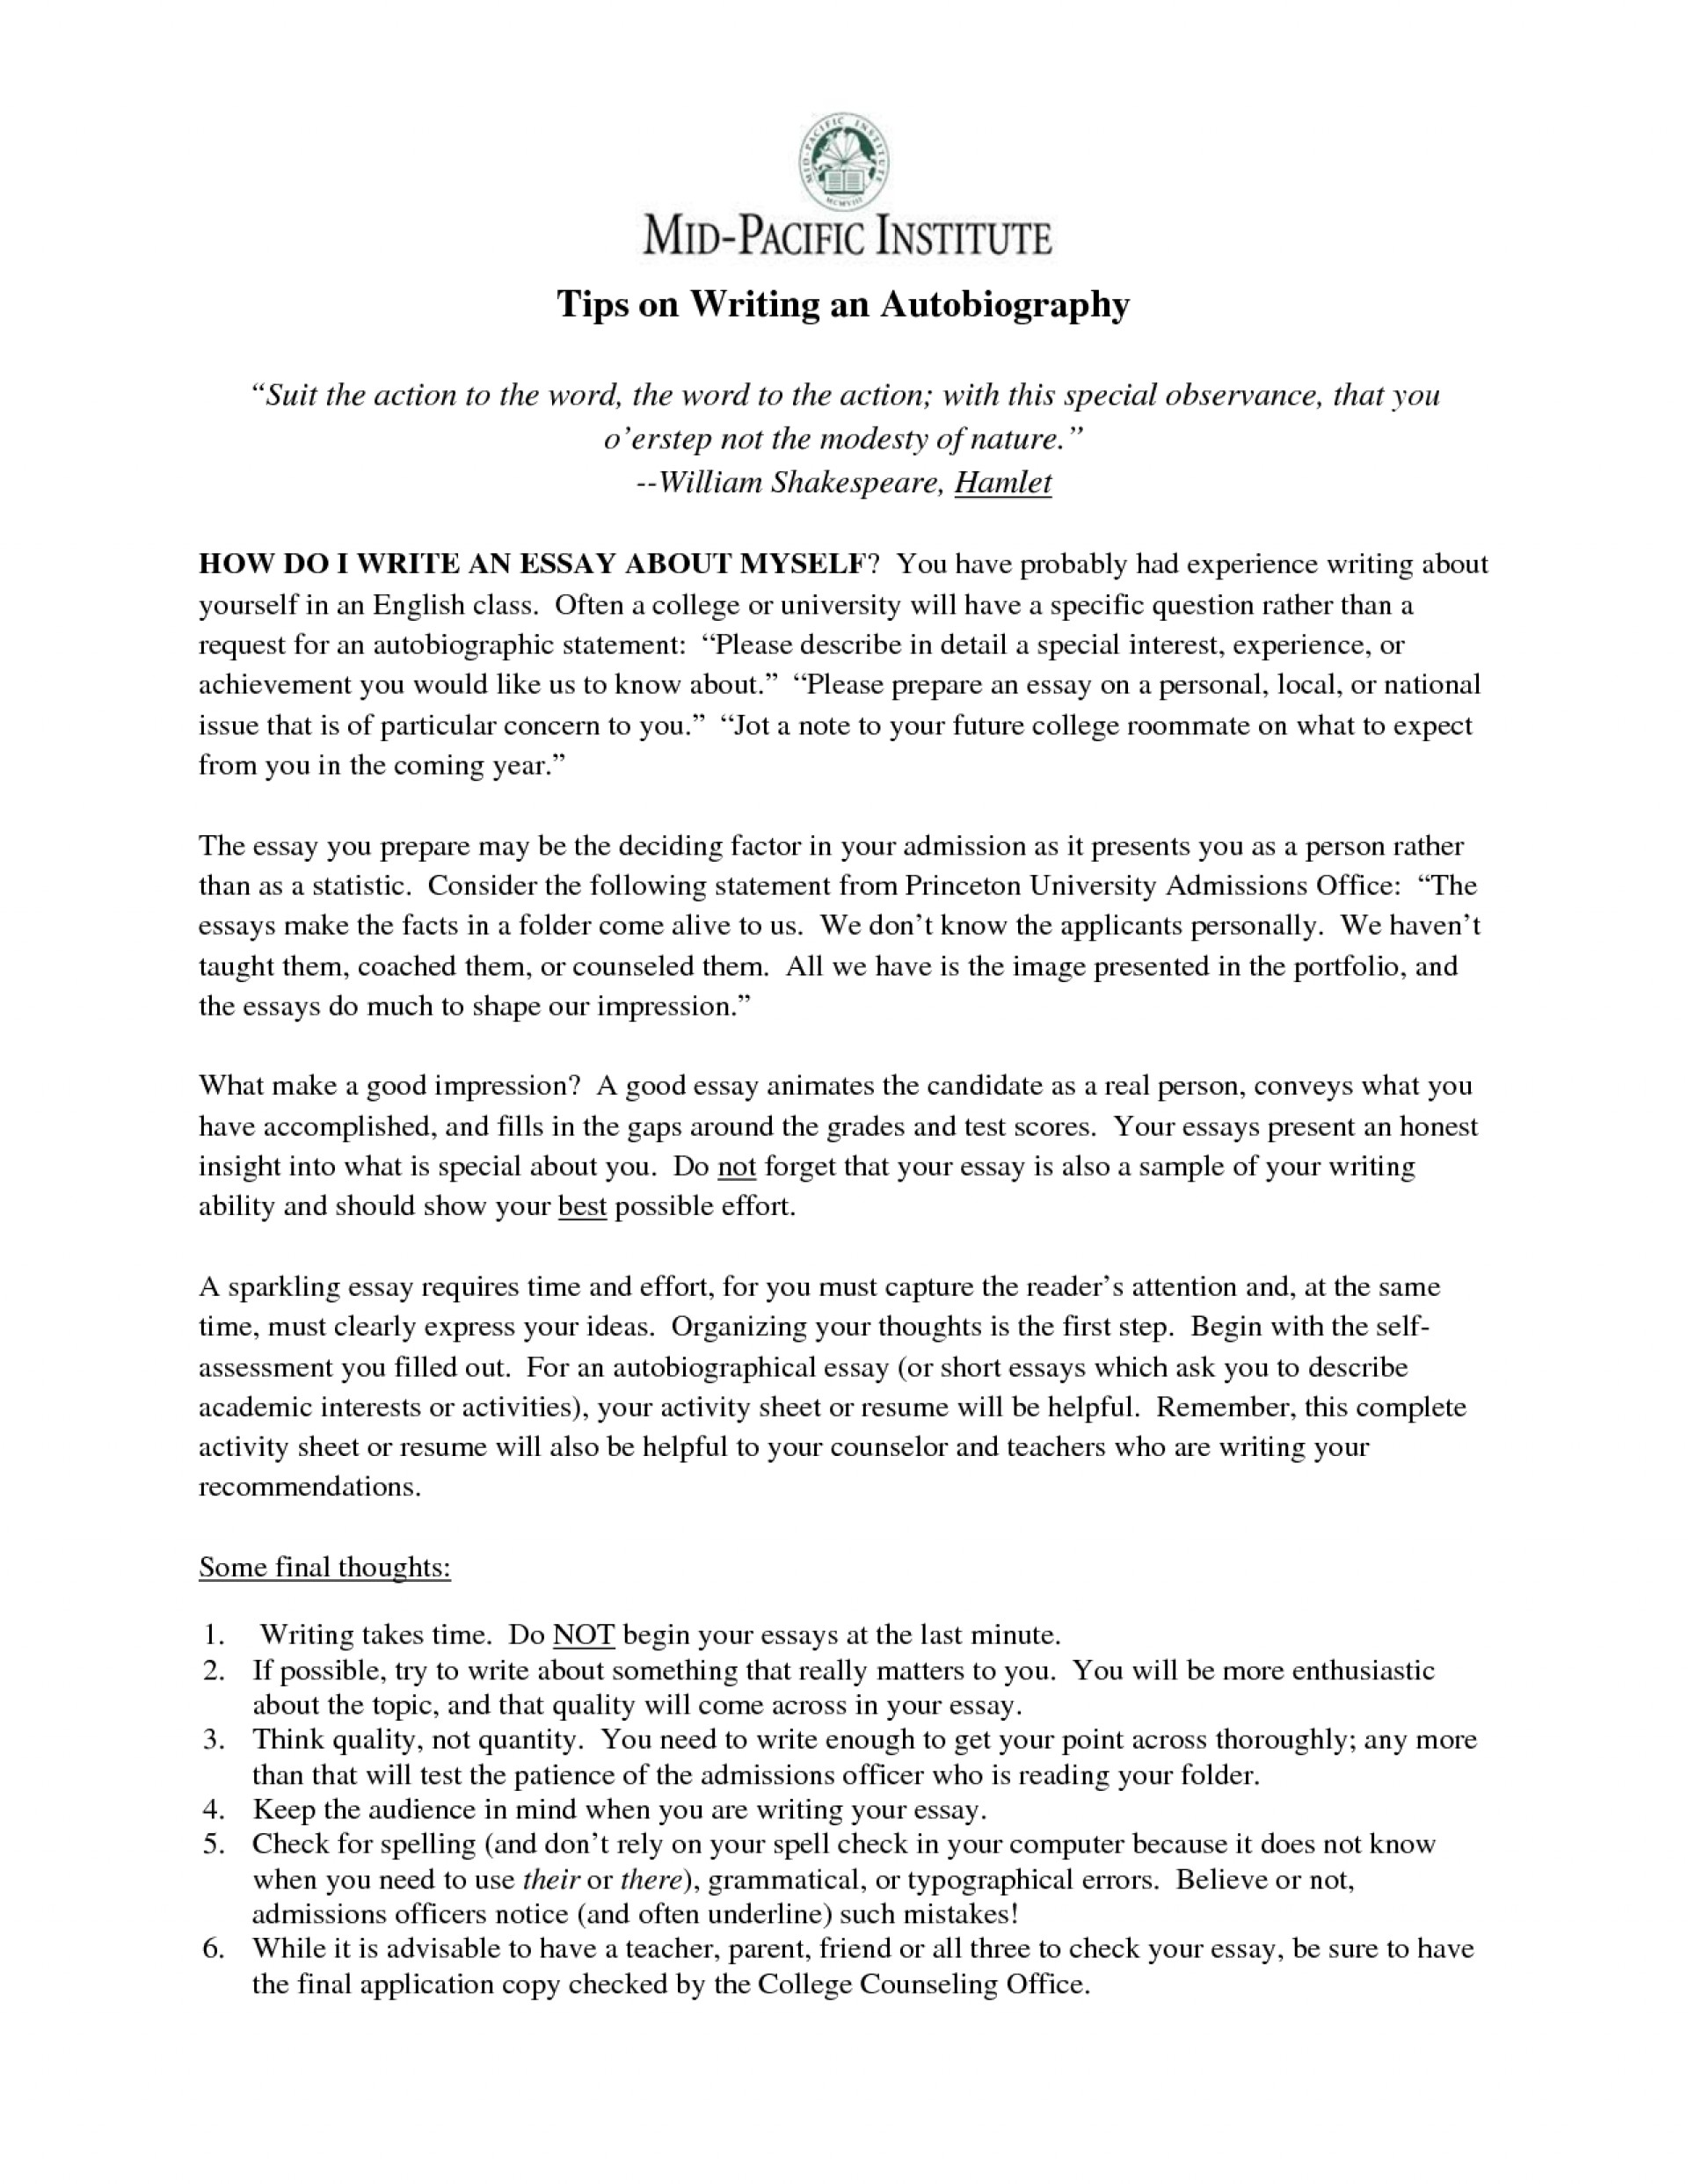 012 Tips To Write Good Essay Help Me An About Myself How For Writing Persuasive With English L College Great Scholarship Narrative Sat Application Argumentative Marvelous A Descriptive 1920